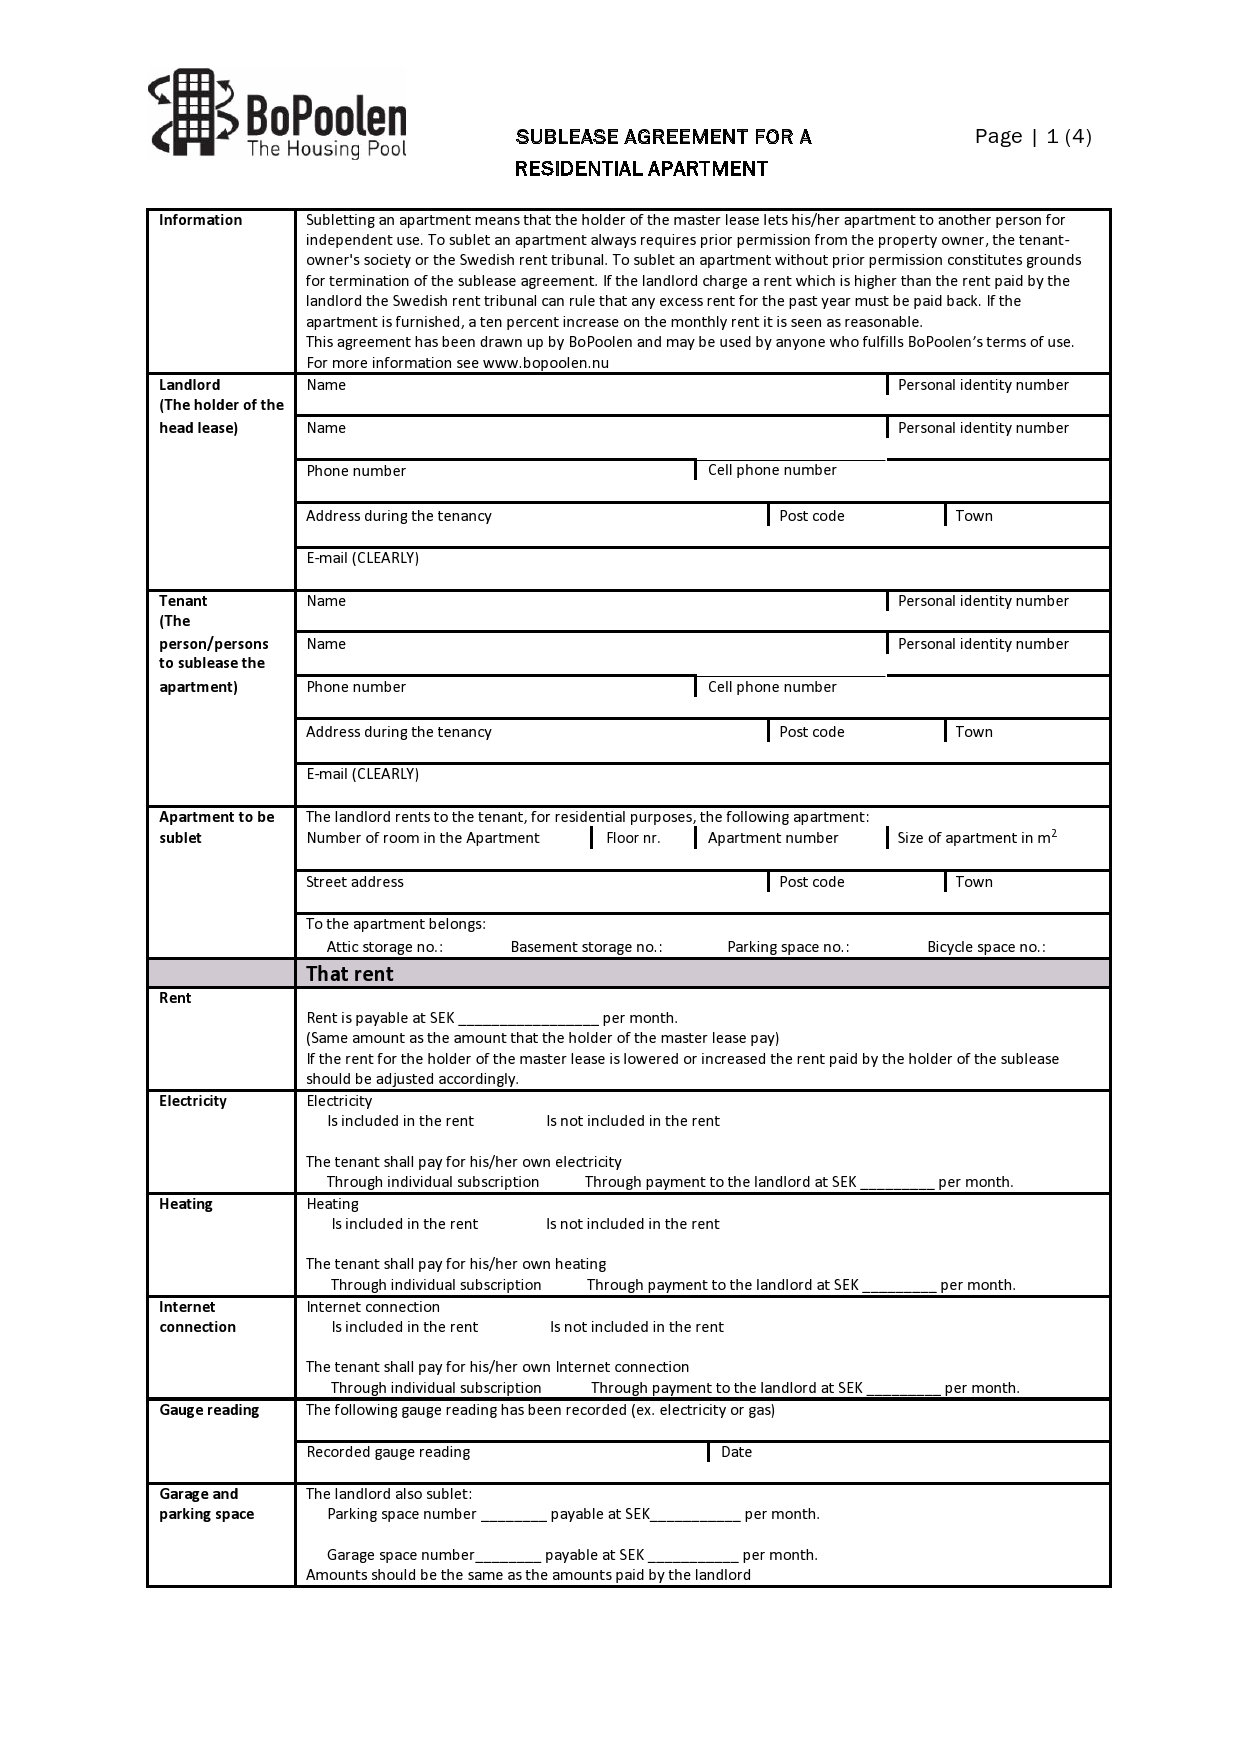 Free residential sublease agreement 04